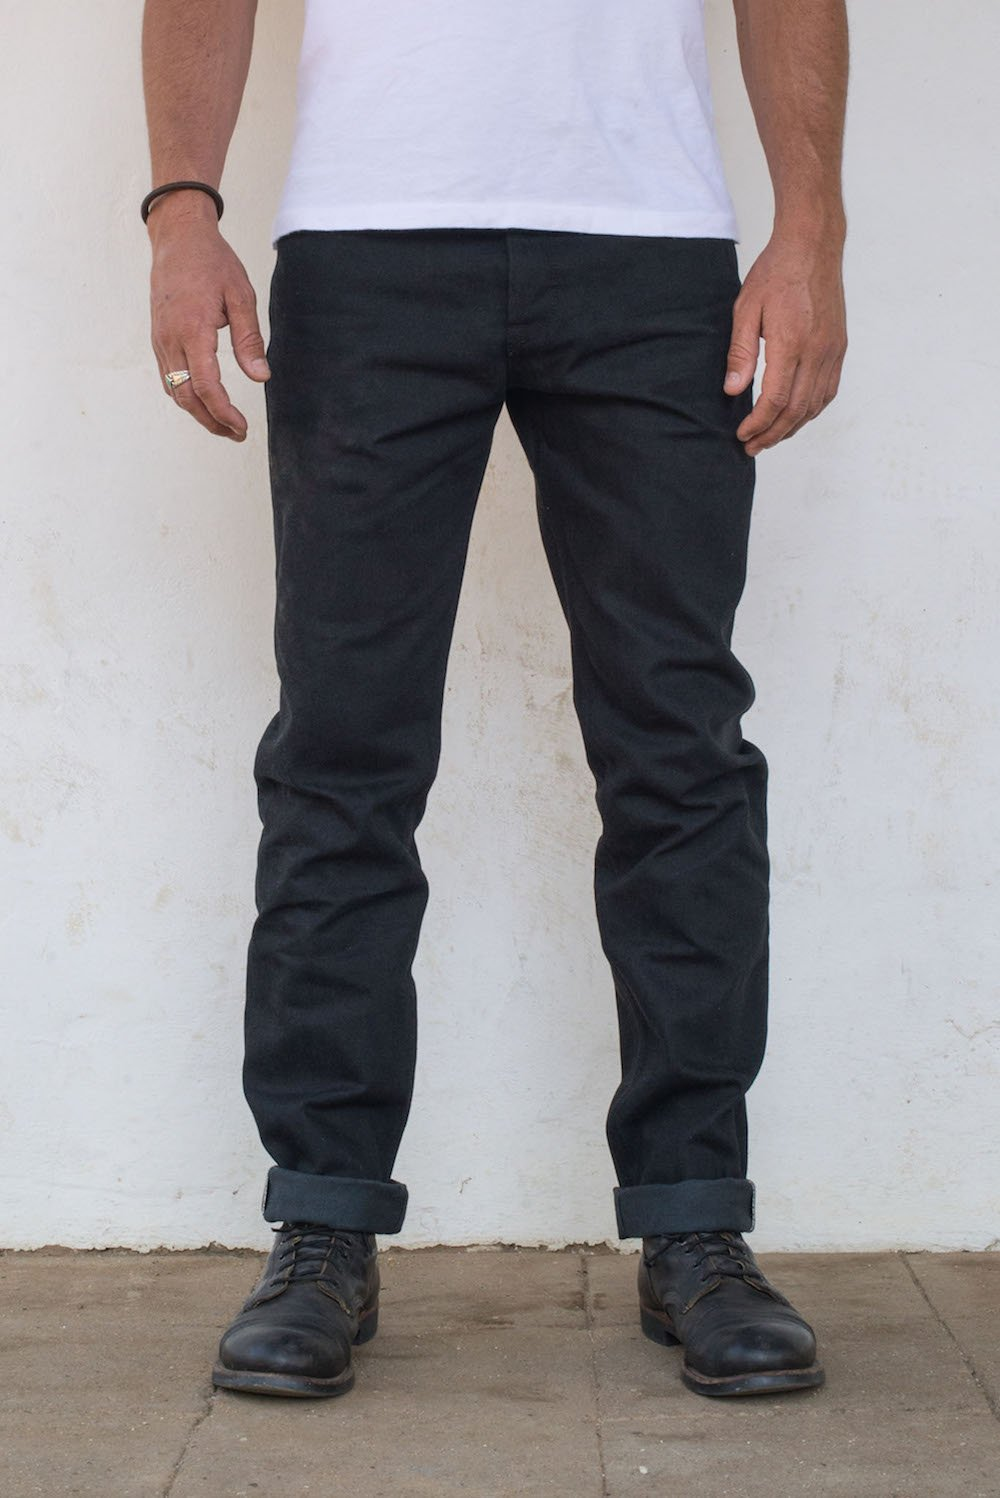 Freenote - Portola Taper Raw 14.25 OZ - Black Grey